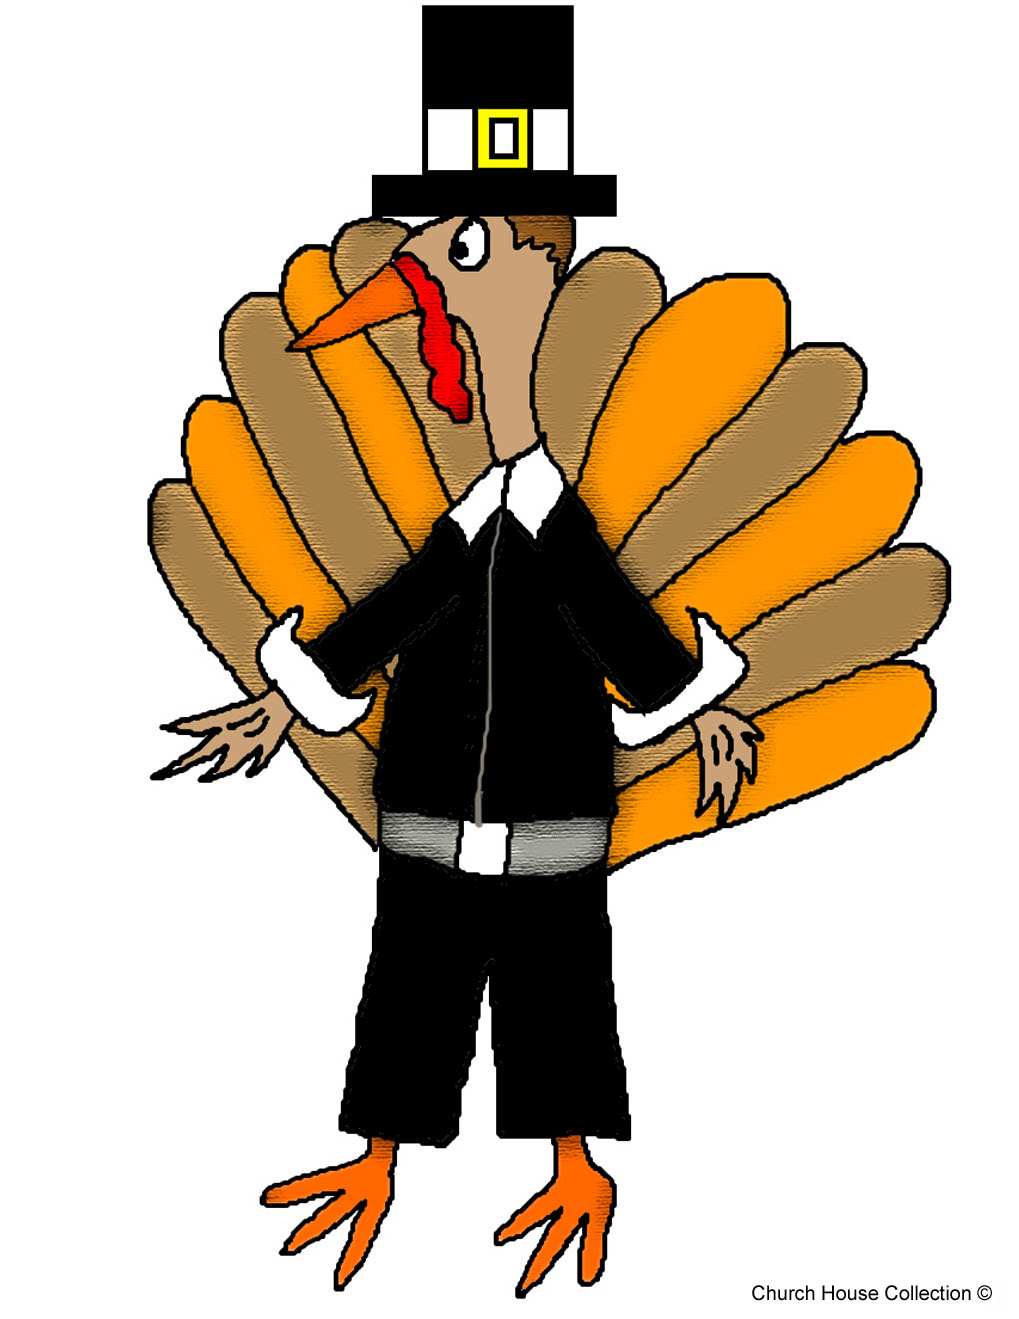 Free Thanksgiving Turkey Sunday School Lessons and Crafts for Childrens For Preschool Kids by Church House Collection- Turkey Wearing Pilgrim Hat and Outfit Clipart Cartoon